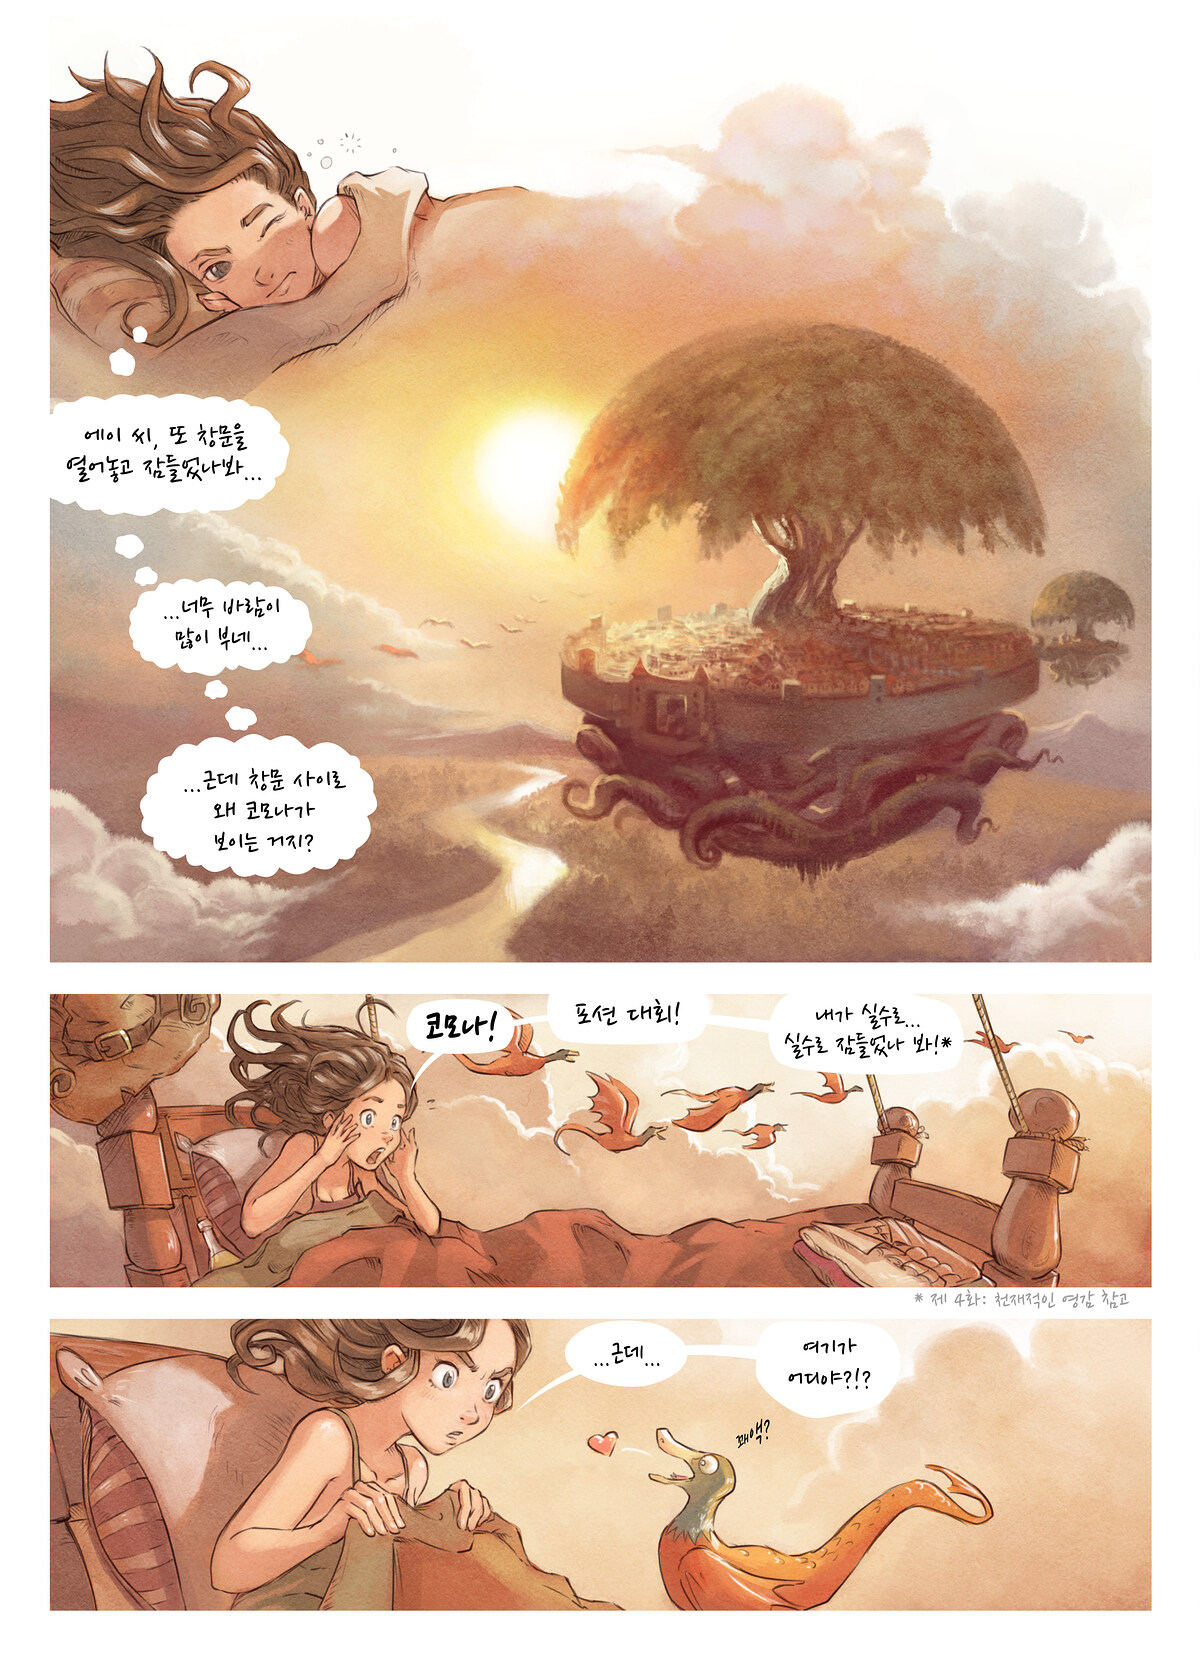 A webcomic page of Pepper&Carrot, 에피소드 6 [kr], 페이지 1